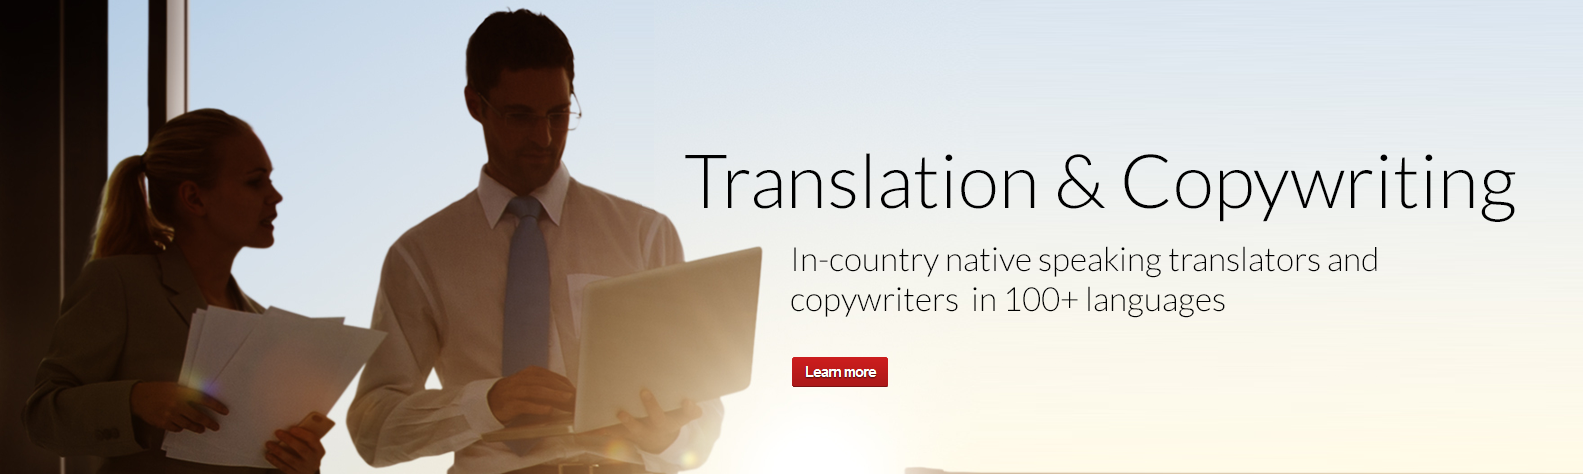 01-gpi-translation-copywriting